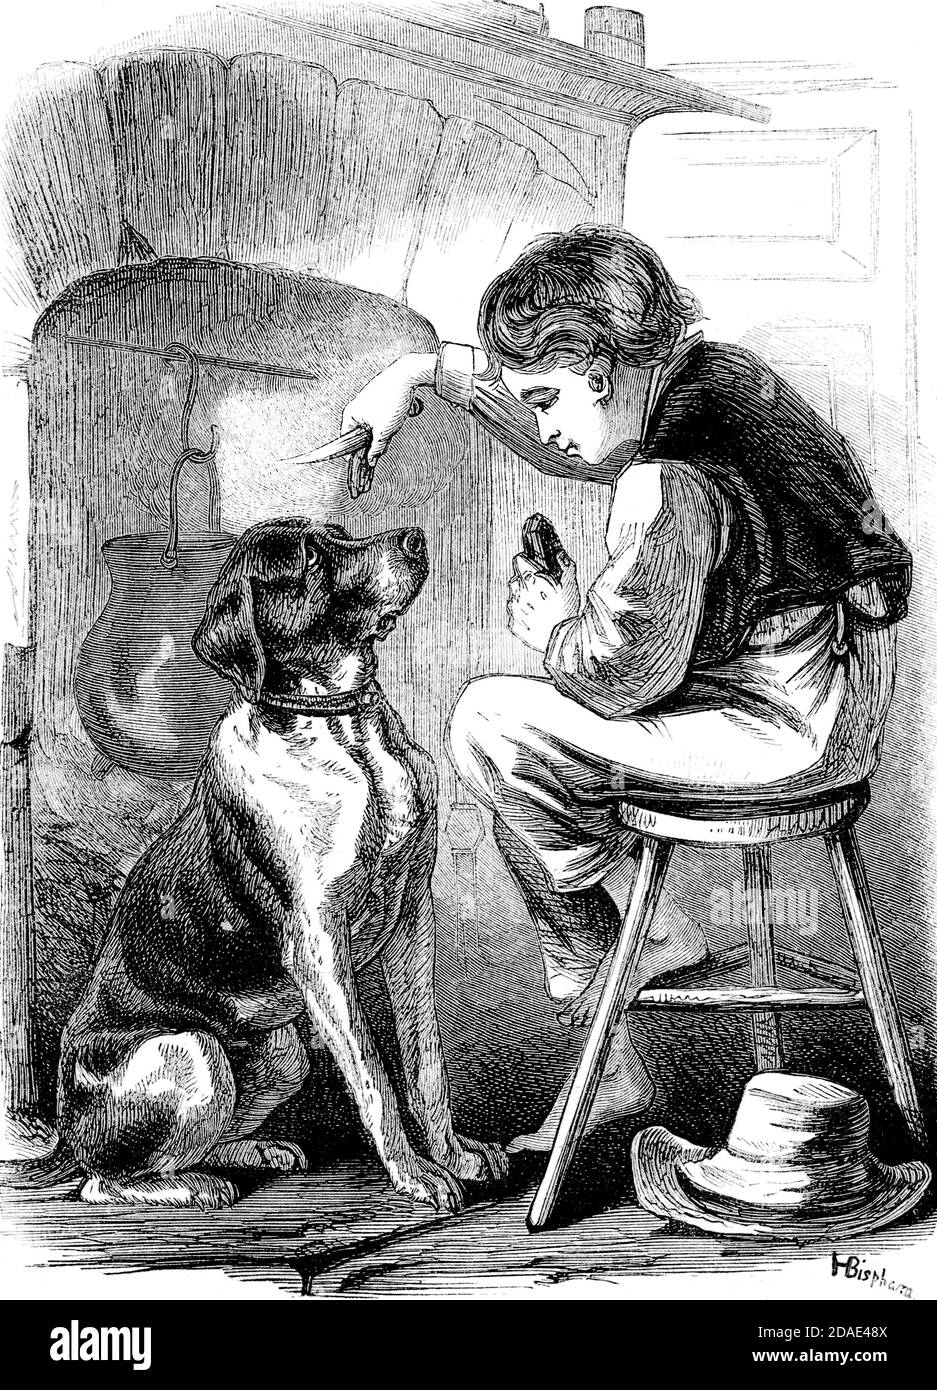 Scene from Great Expectations the thirteenth novel by Charles Dickens from Godey's Lady's Book and Magazine, Marc, 1864, Volume LXIX, (Volume 69), Philadelphia, Louis A. Godey, Sarah Josepha Hale, Stock Photo